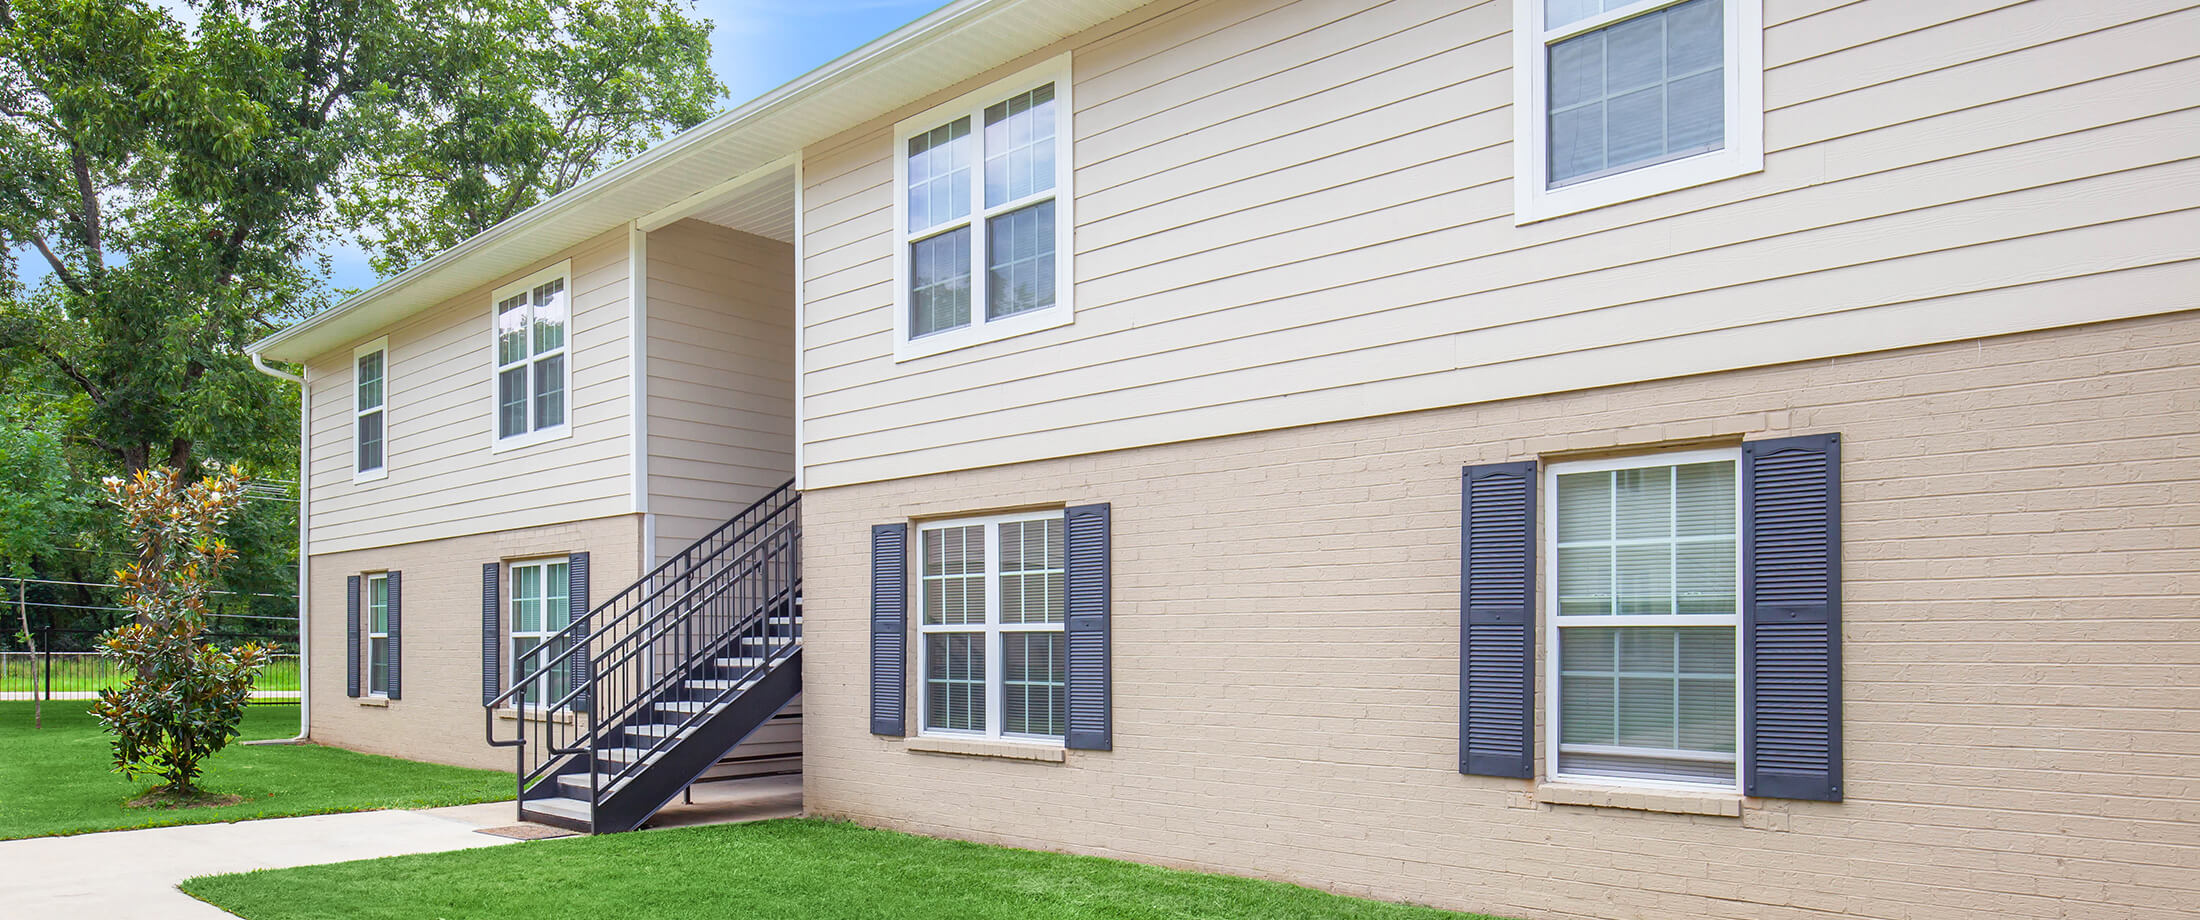 Remarkable Berwood Apartments Apartments In Jackson Ms Home Interior And Landscaping Transignezvosmurscom